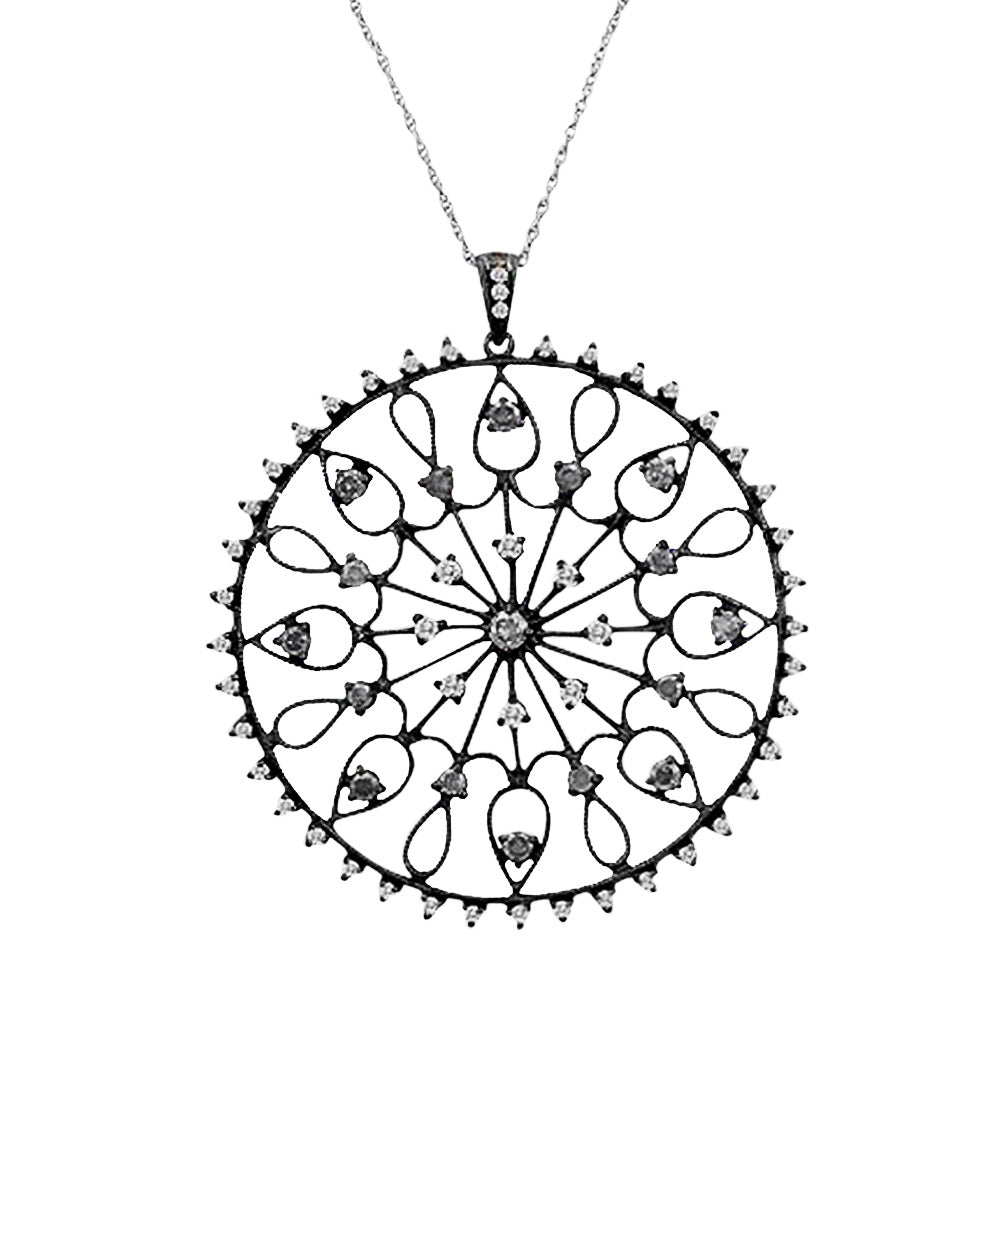 Mandala Chakra Pendant Necklace in Oxidized Sterling Silver